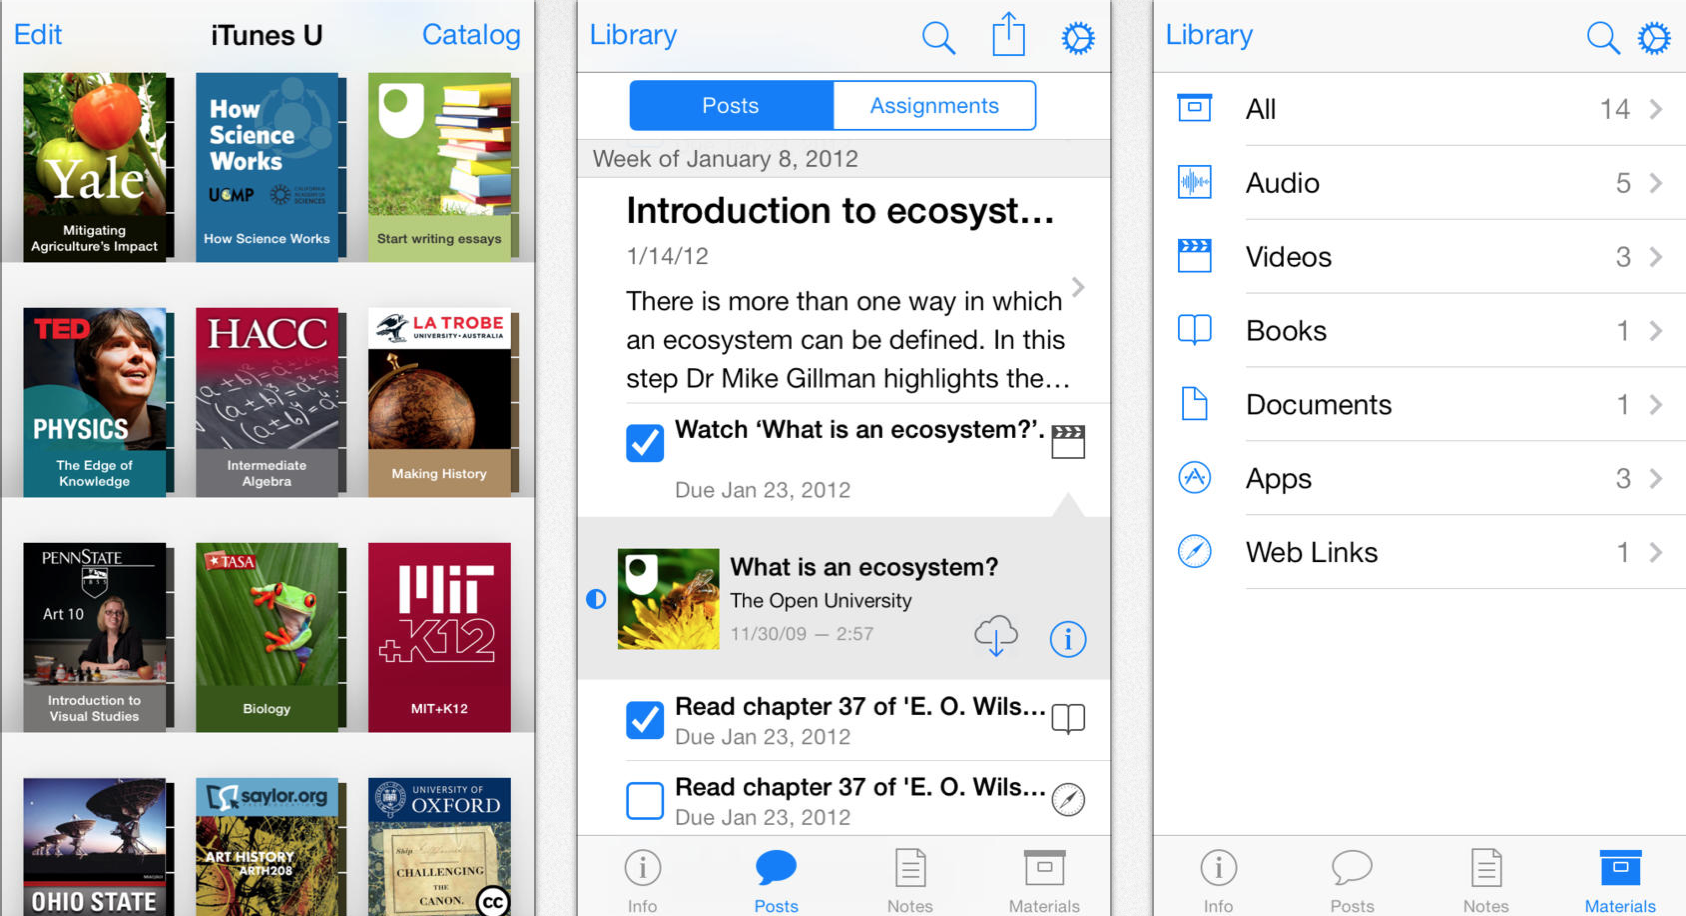 Le Revamps Design Of Ibooks And Itunes U For Ios 7 On Ipad Iphone